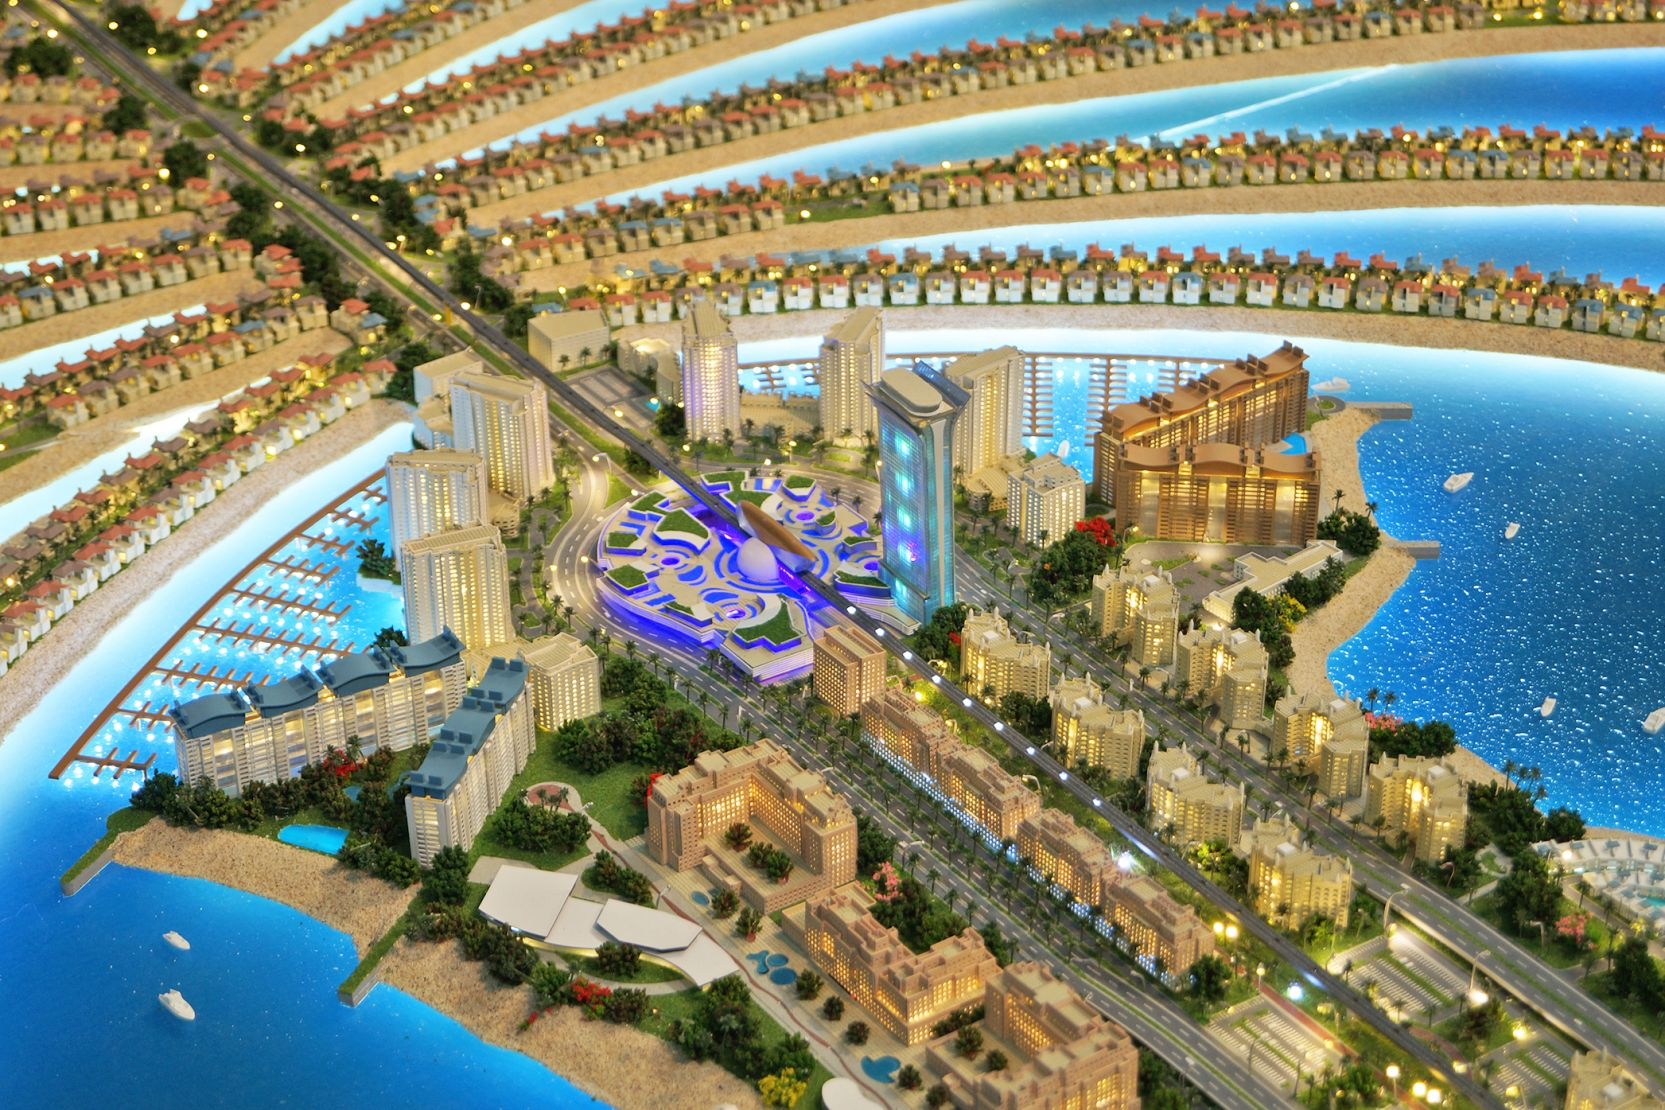 Palm Jumeirah trunck, Dubai, developer's masterplan model